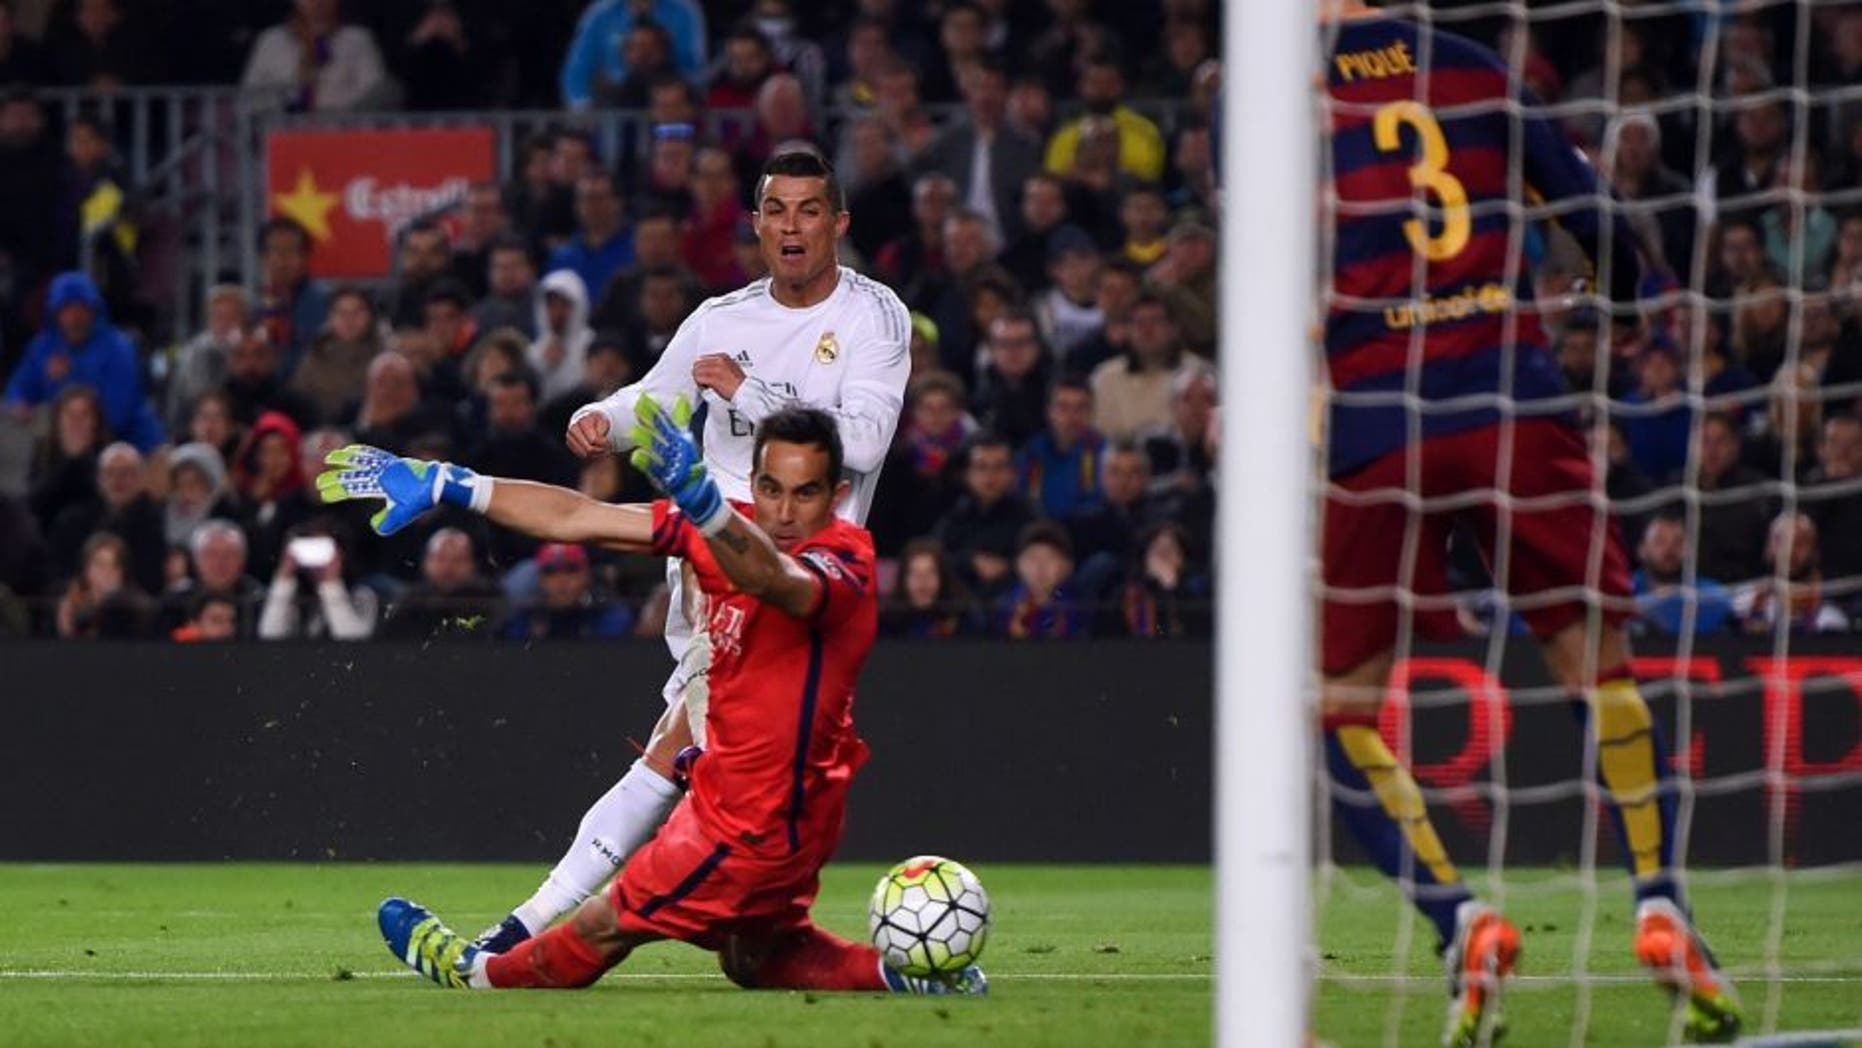 xxxx during the La Liga match between FC Barcelona and Real Madrid CF at Camp Nou on April 2, 2016 in Barcelona, Spain.